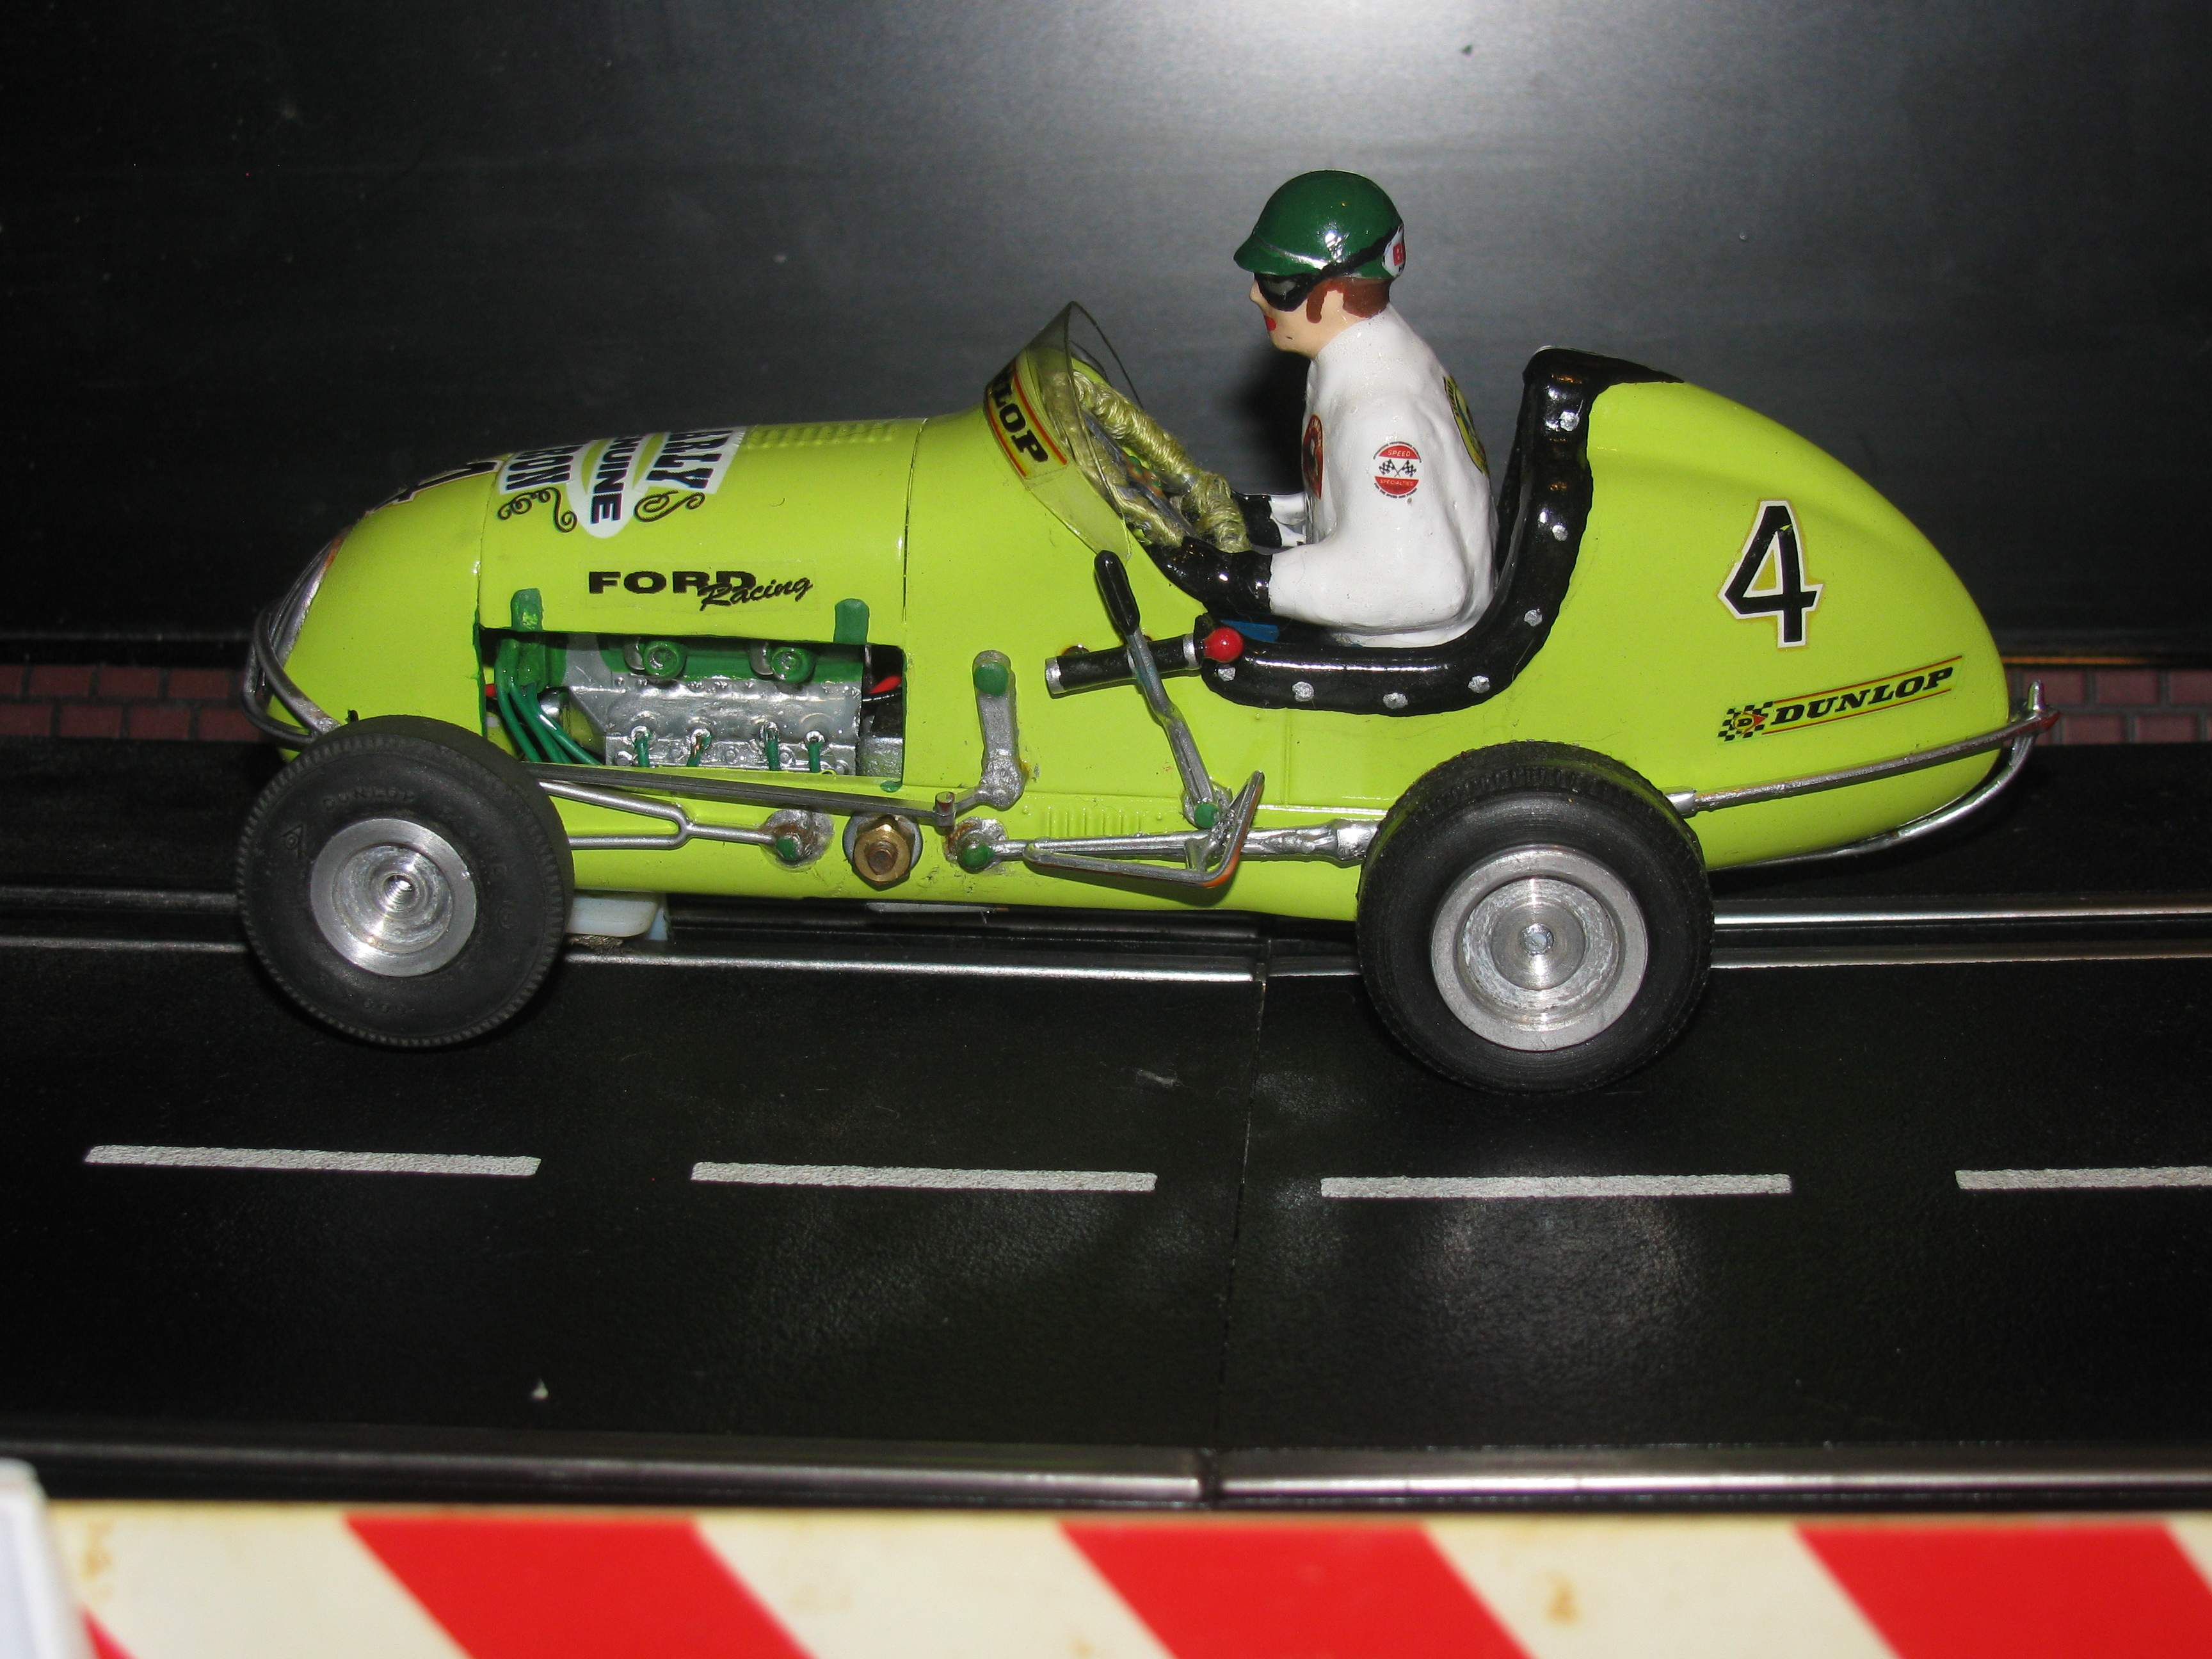 * SOLD * * SALE ENDS SUNDAY * Monogram Midget Racer KeyLime Yellow-Green Racing Special Car 4 1:24 Scale